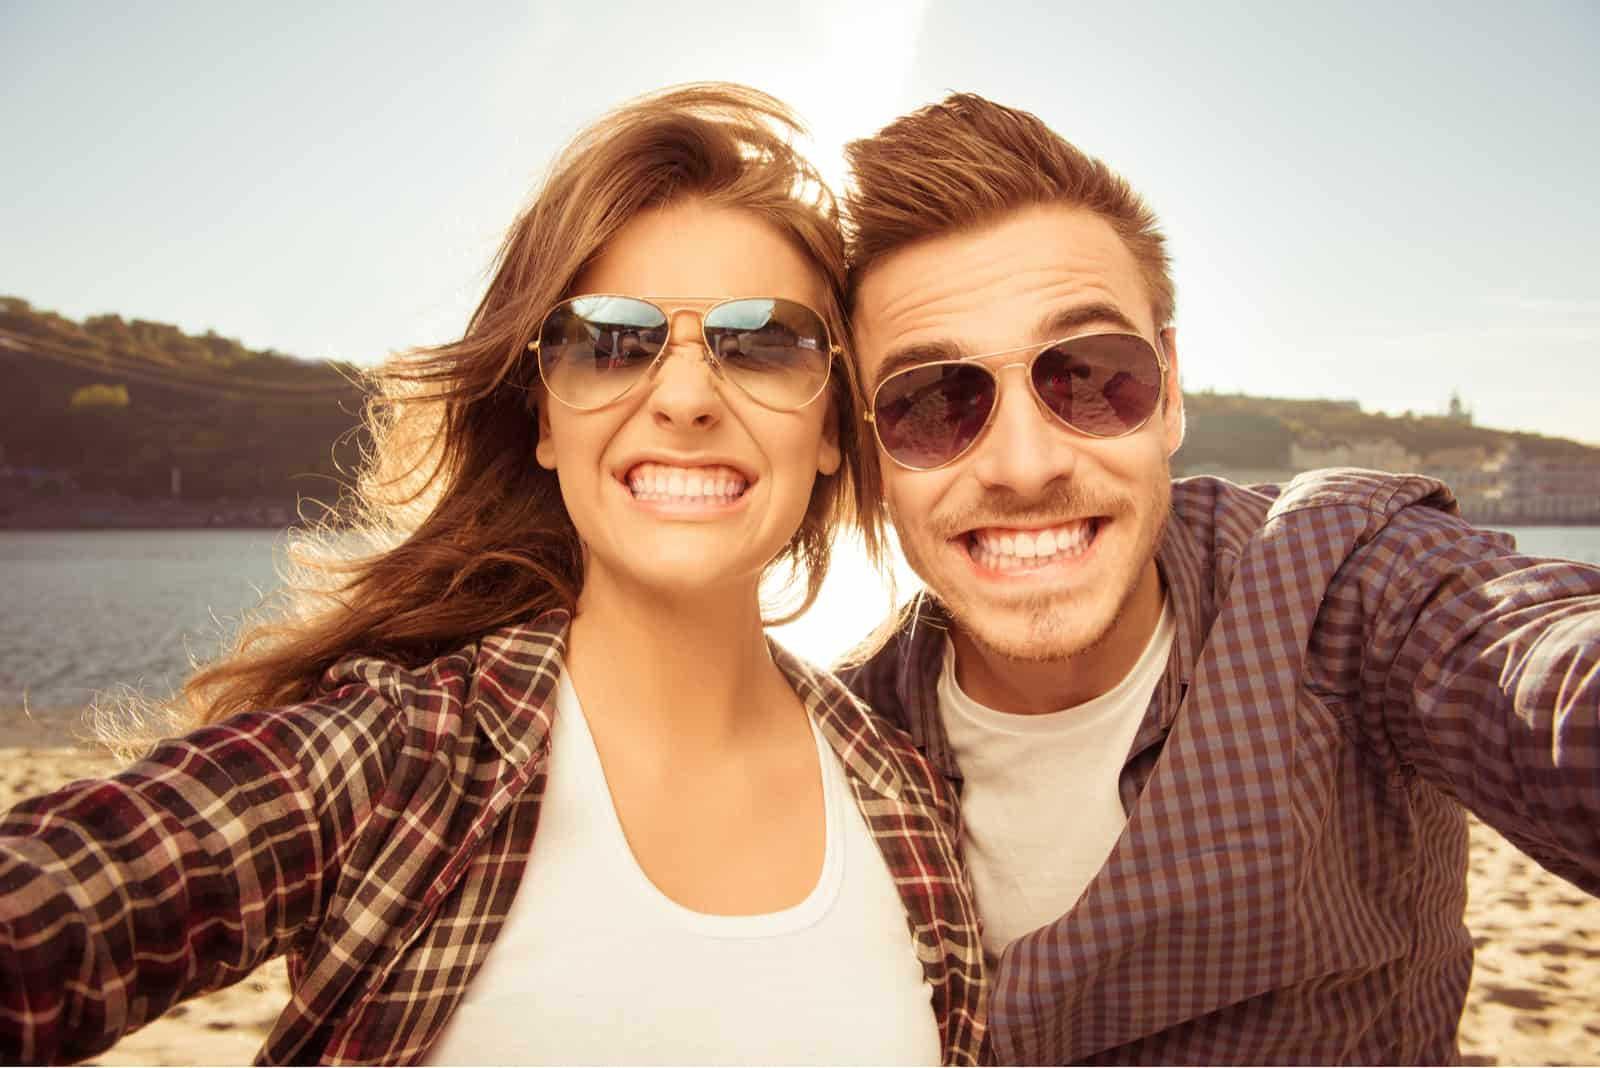 a smiling man and woman are photographed with glasses on their heads